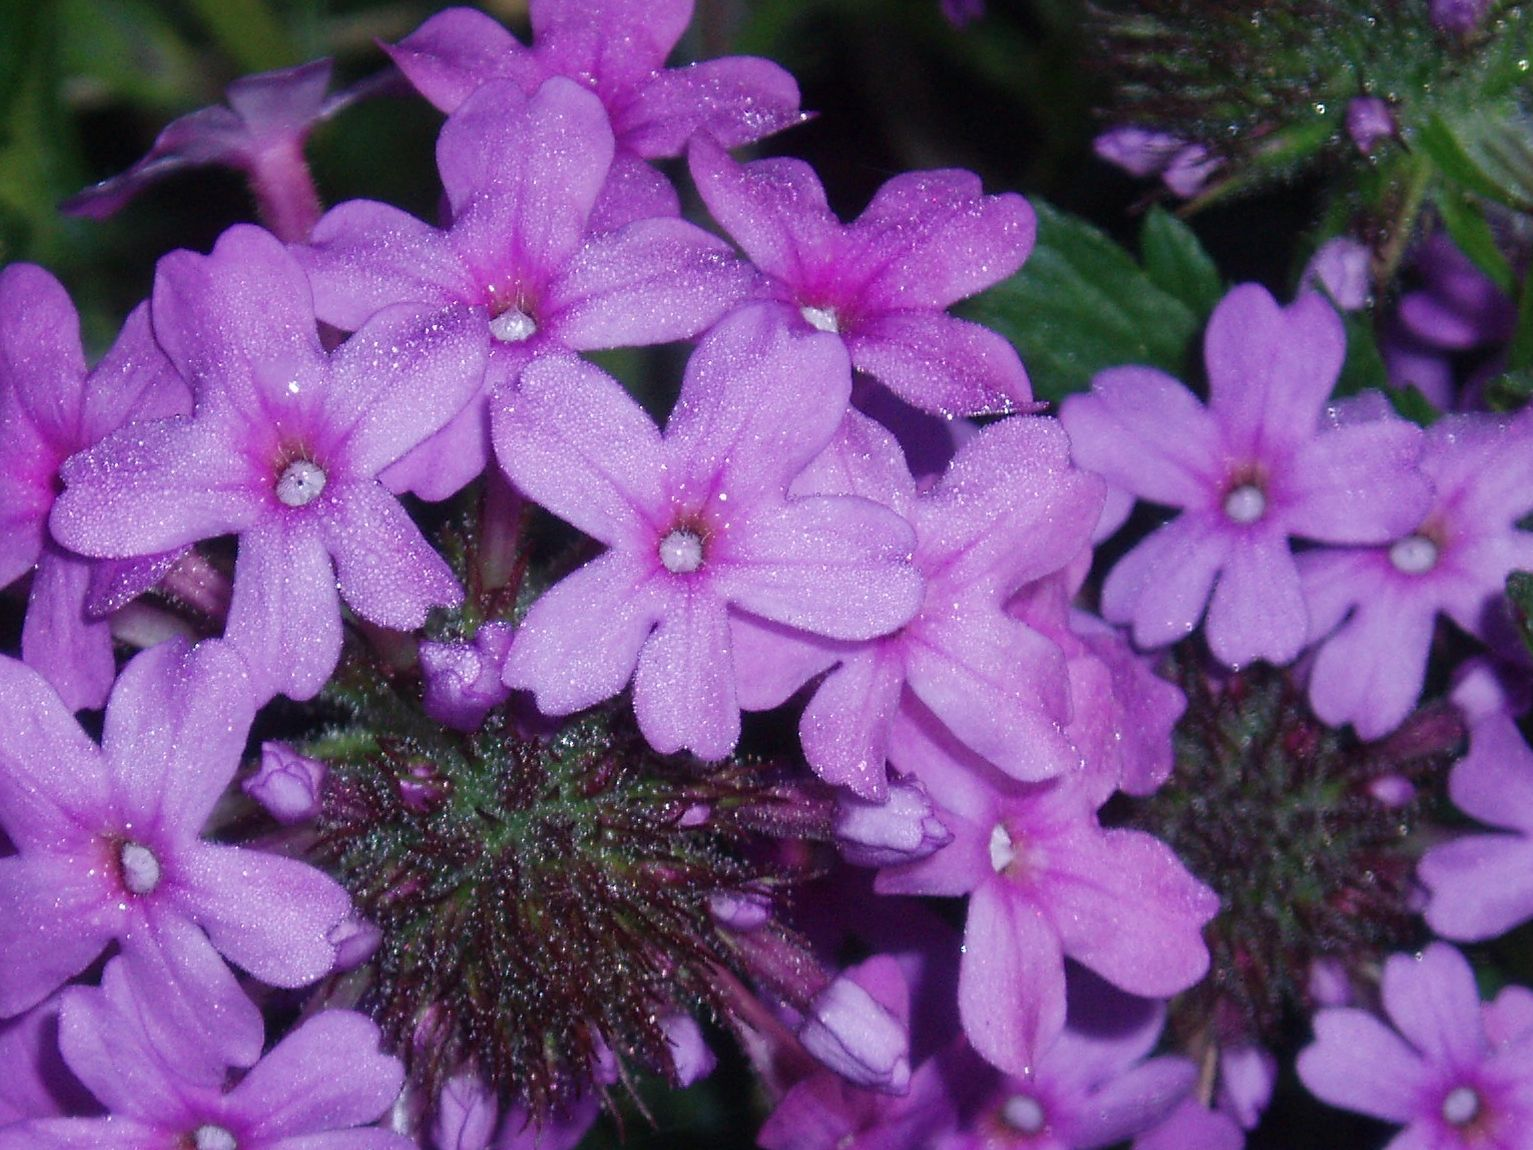 "{""blocks"":[{""key"":""1bhra"",""text"":""Glandularia canaden Verbena canadensis Rose Vervain - potted plants email john@easywildflowers.com"",""type"":""unstyled"",""depth"":0,""inlineStyleRanges"":[],""entityRanges"":[],""data"":{}}],""entityMap"":{}}"